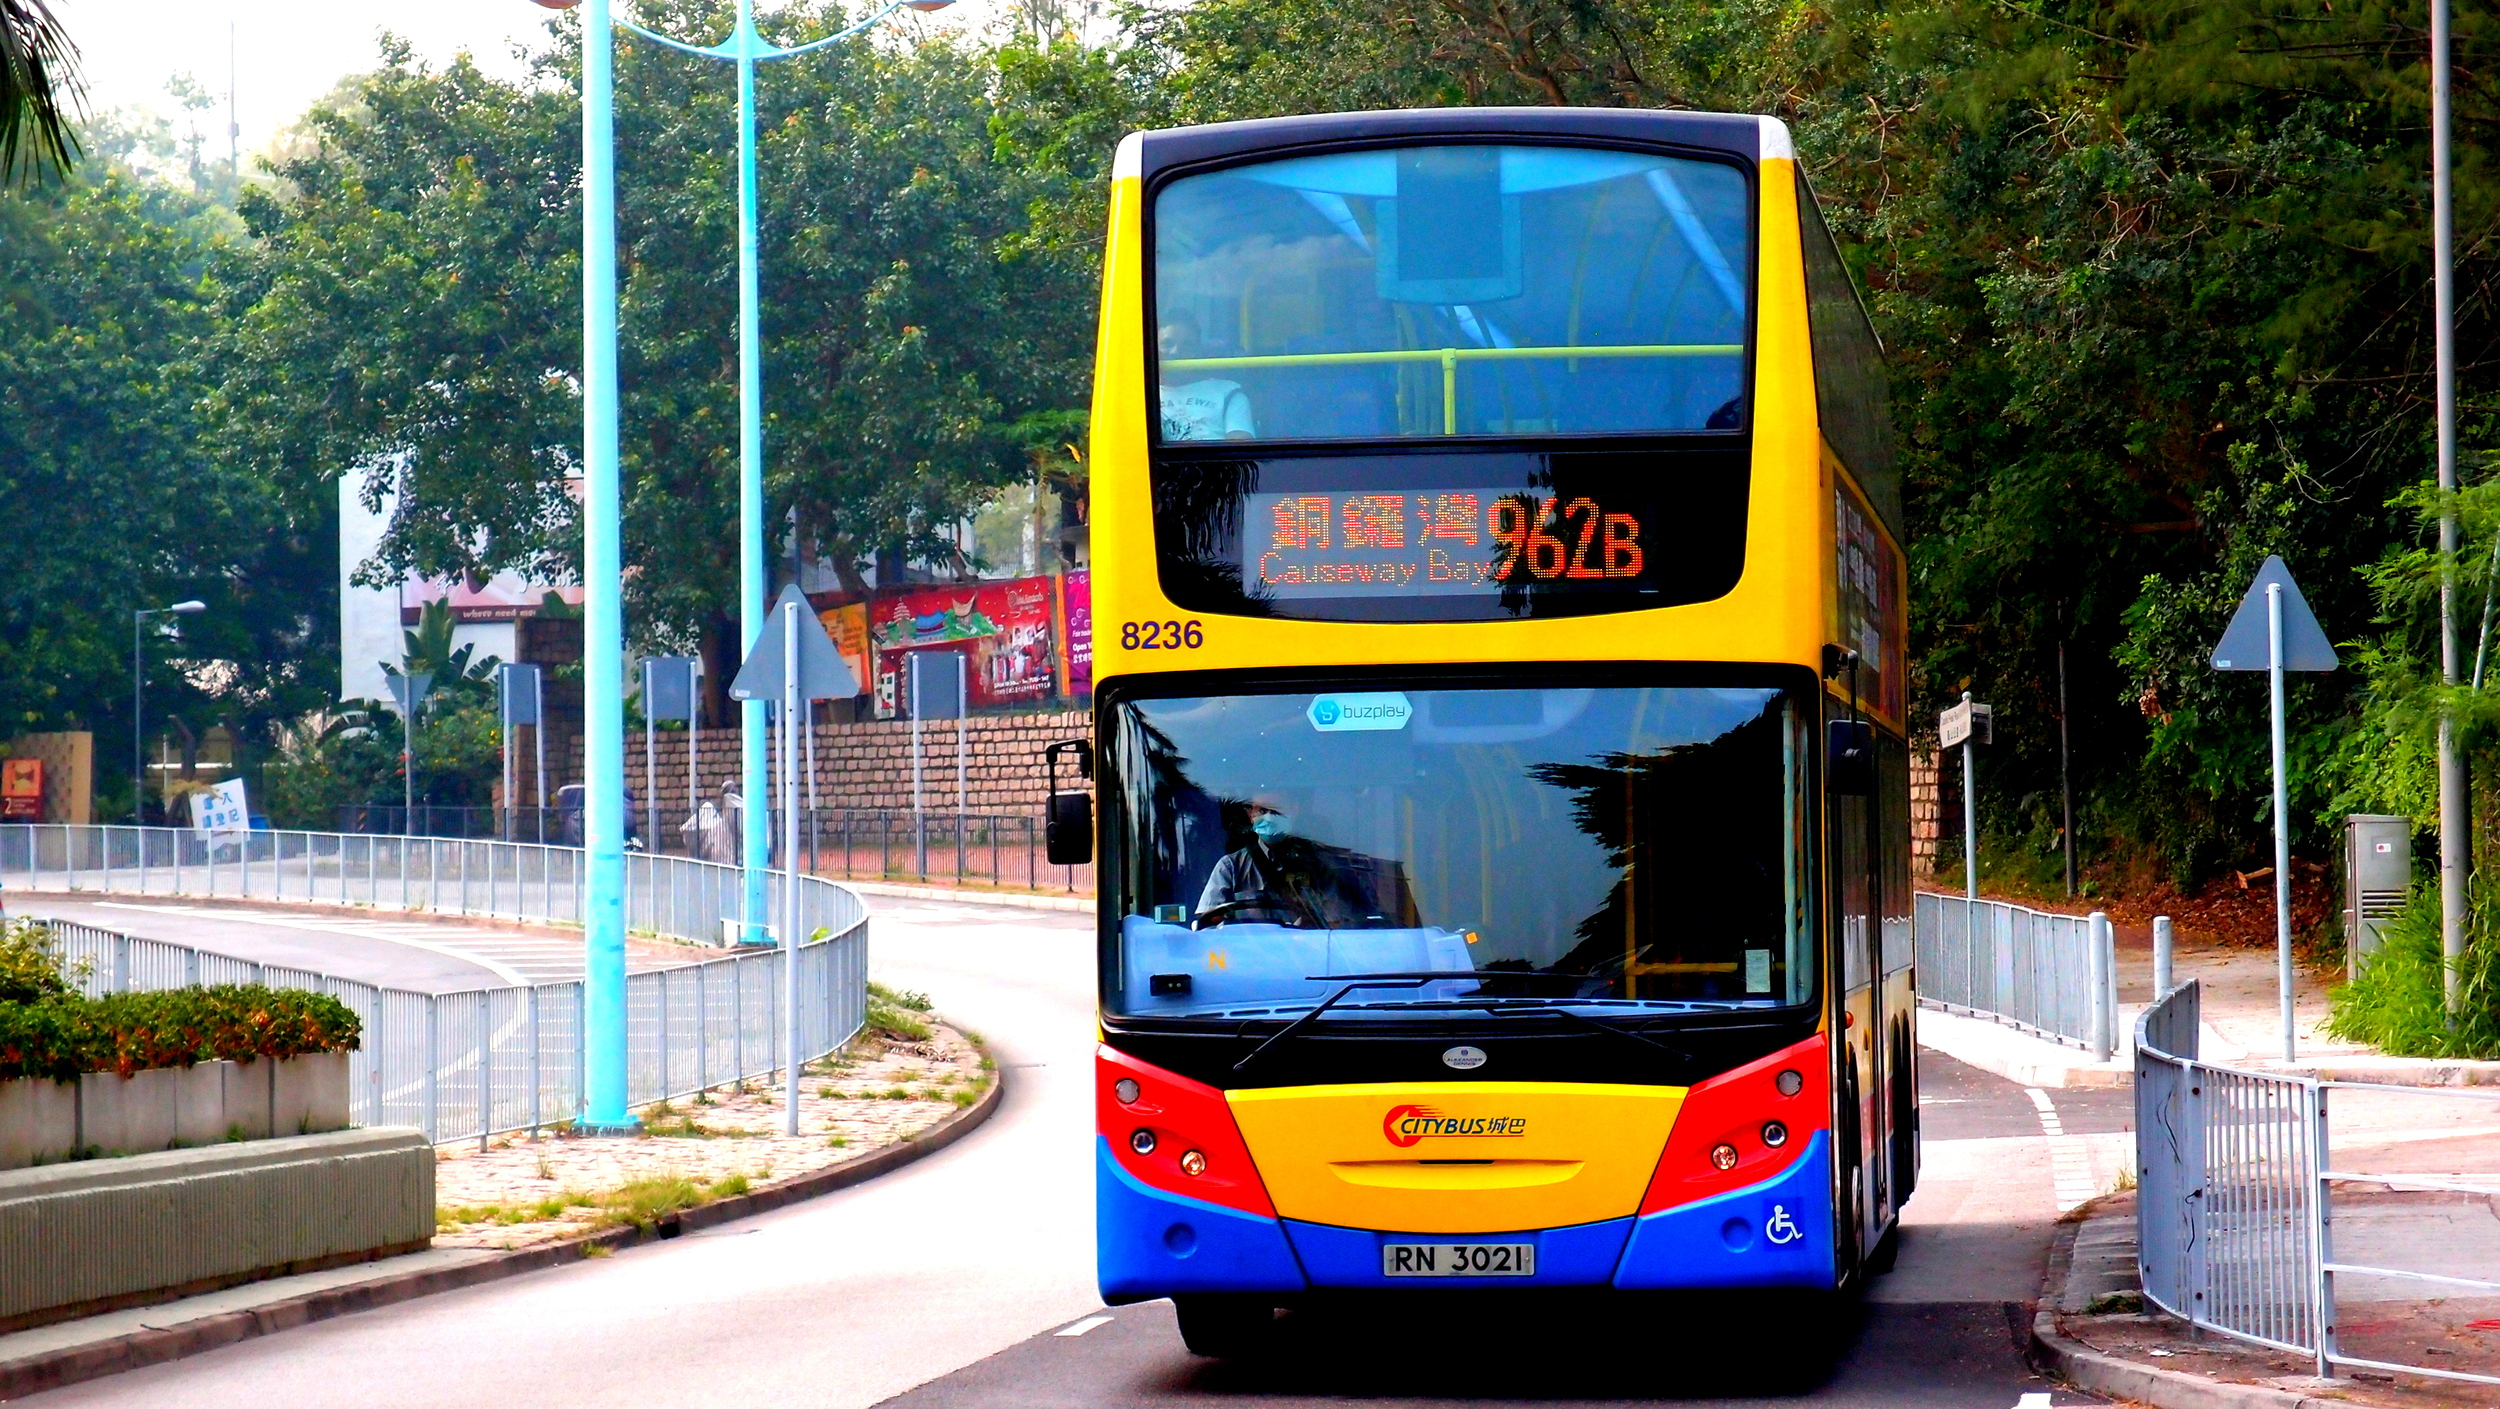 I like the colour scheme of the Citybus buses and the bus is actually very comfortable with a smooth ride